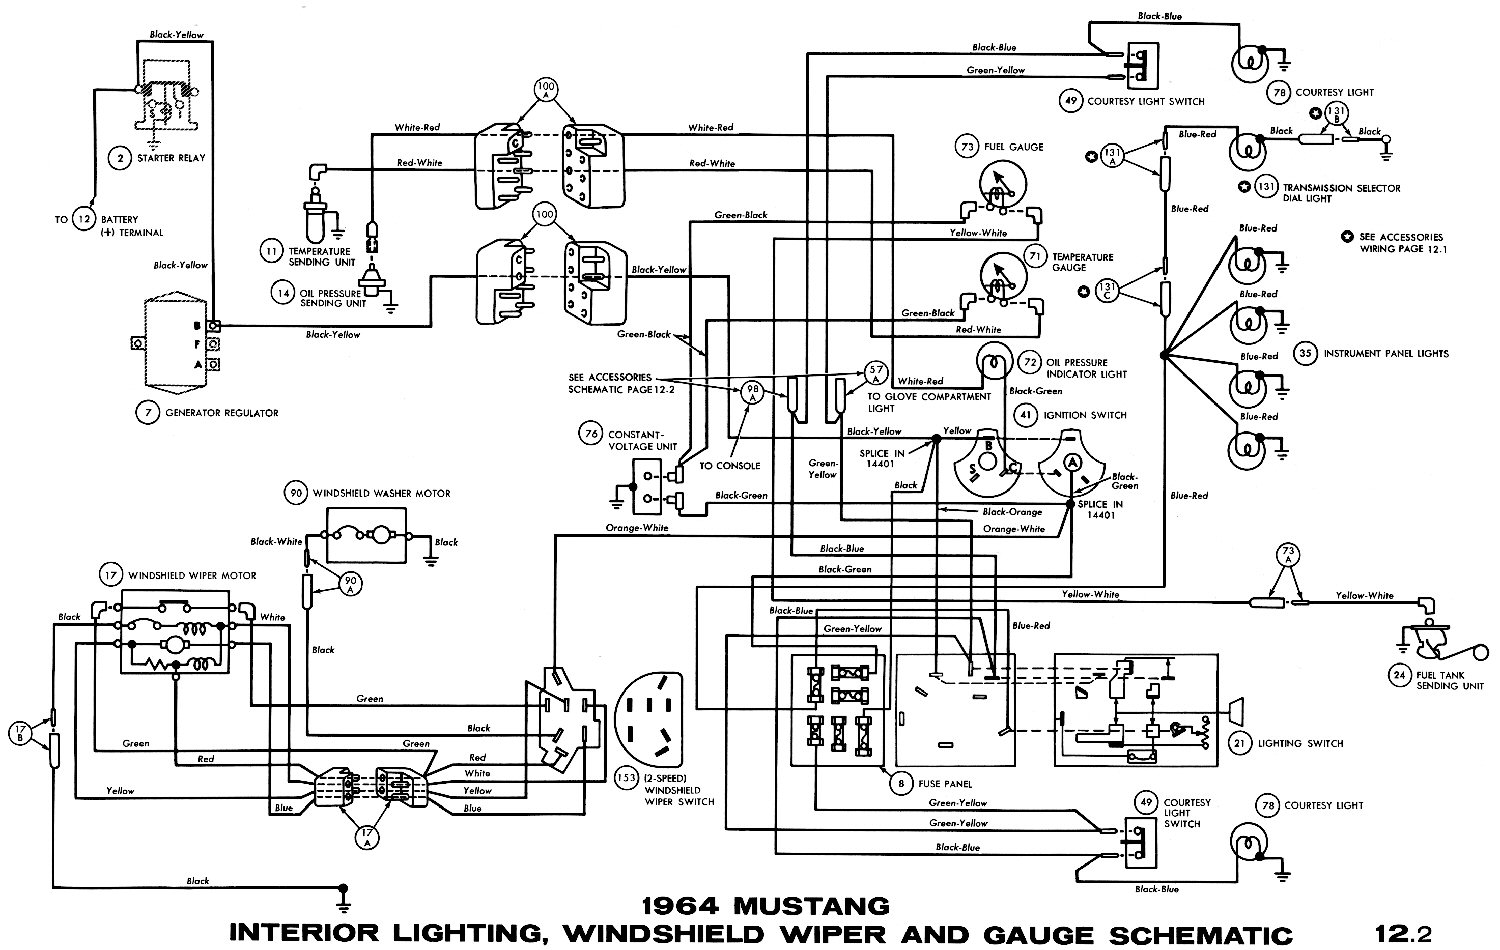 1964k 1966 mustang wiring diagram 1967 mustang wiring schematic \u2022 wiring 1969 mustang alternator wiring diagram at eliteediting.co